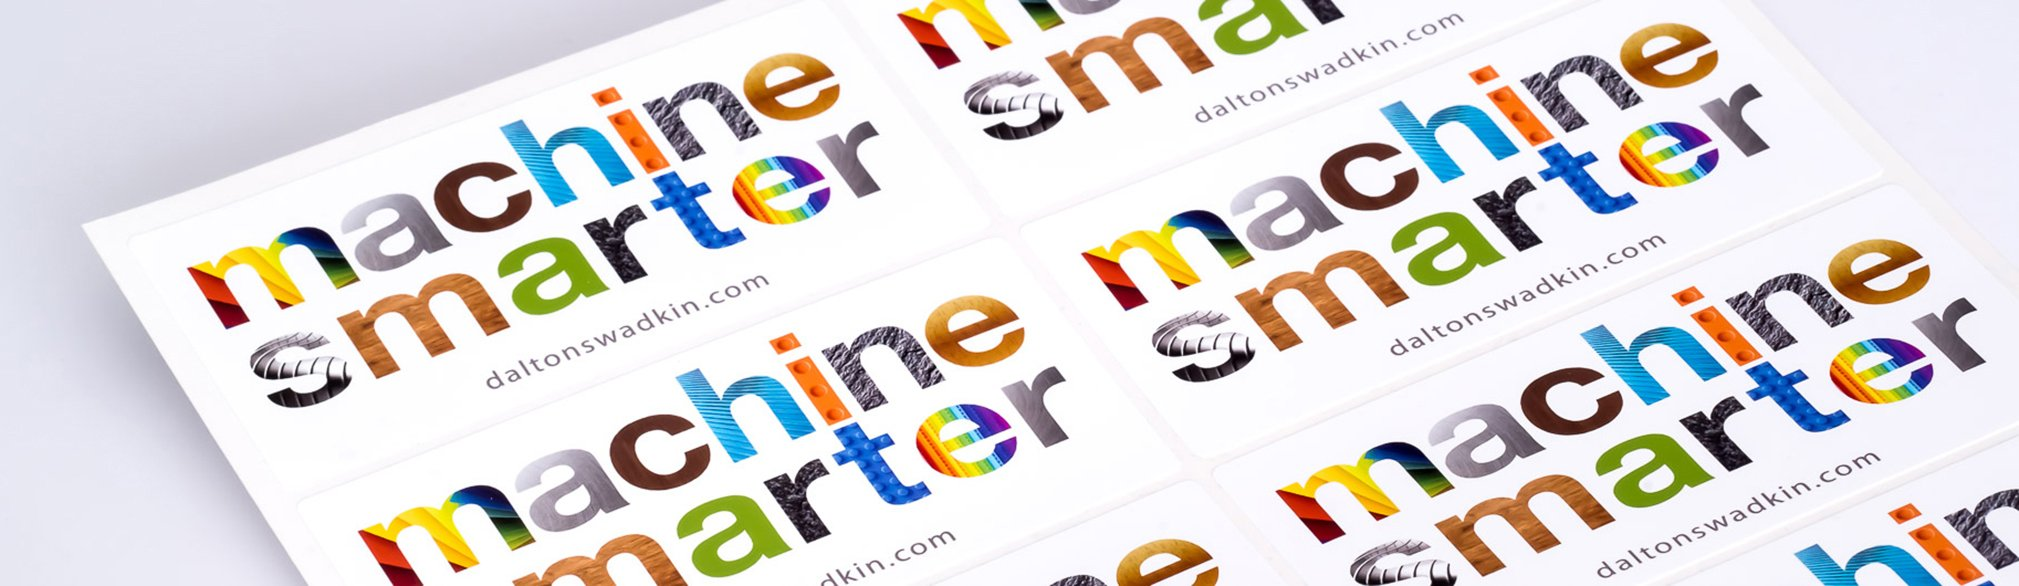 White Glossy Waterproof Stickers